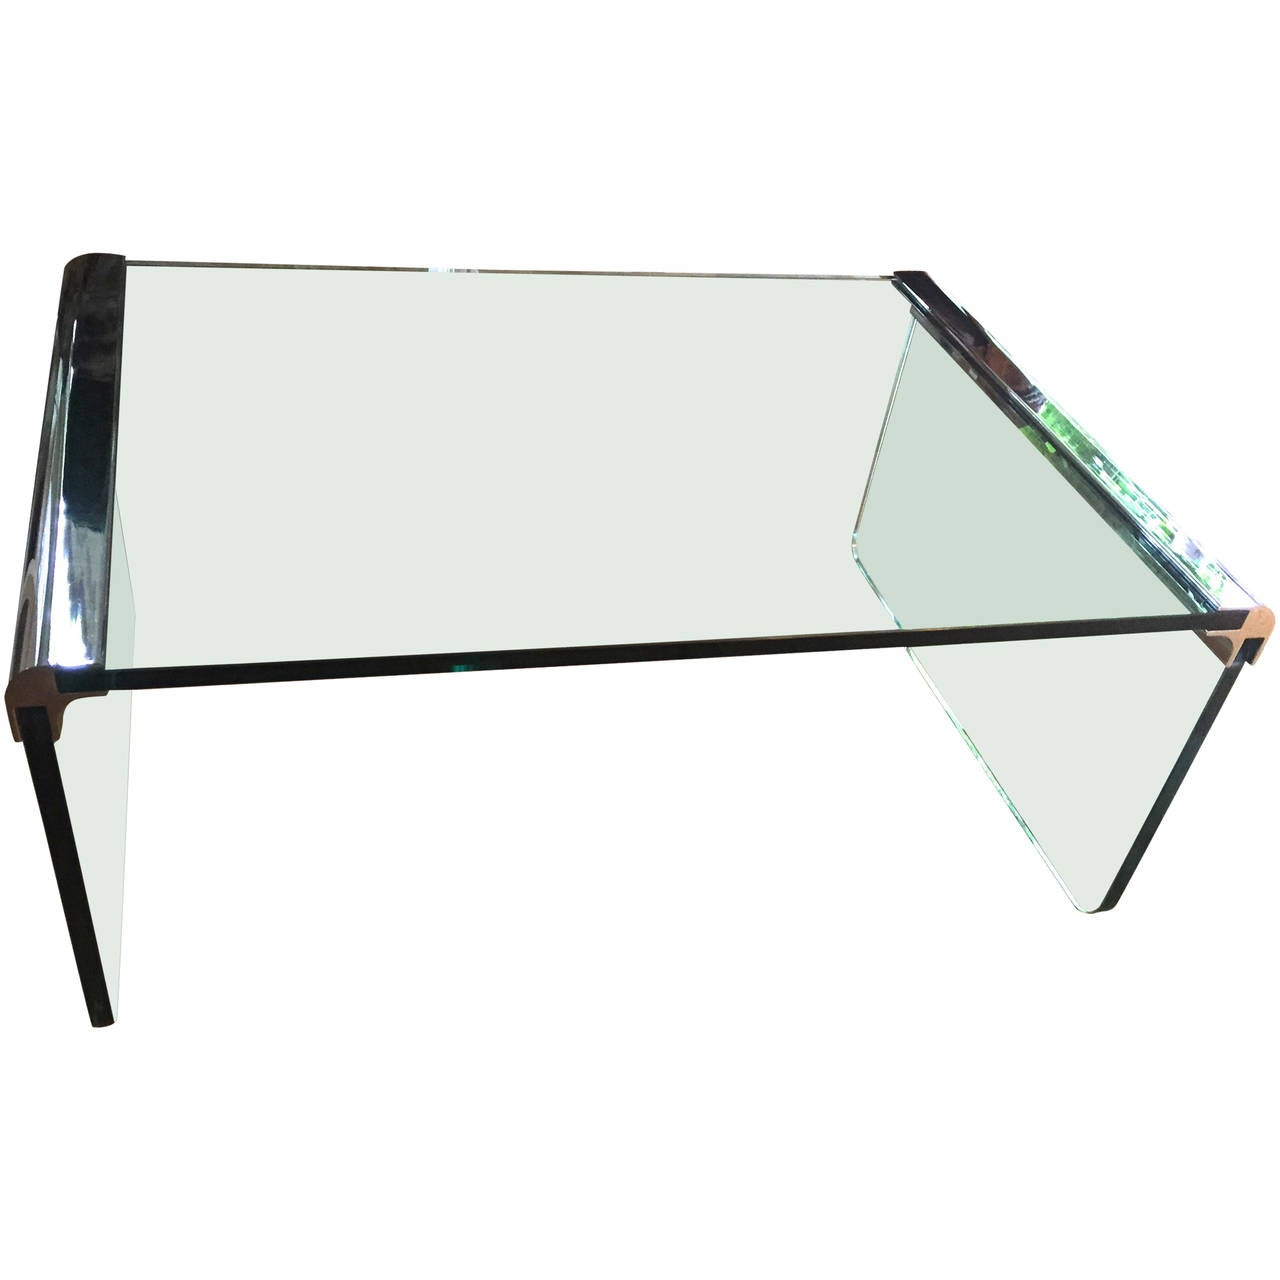 Waterfall Glass and Chrome Cocktail Table by Leon Rosen for Pace Collection